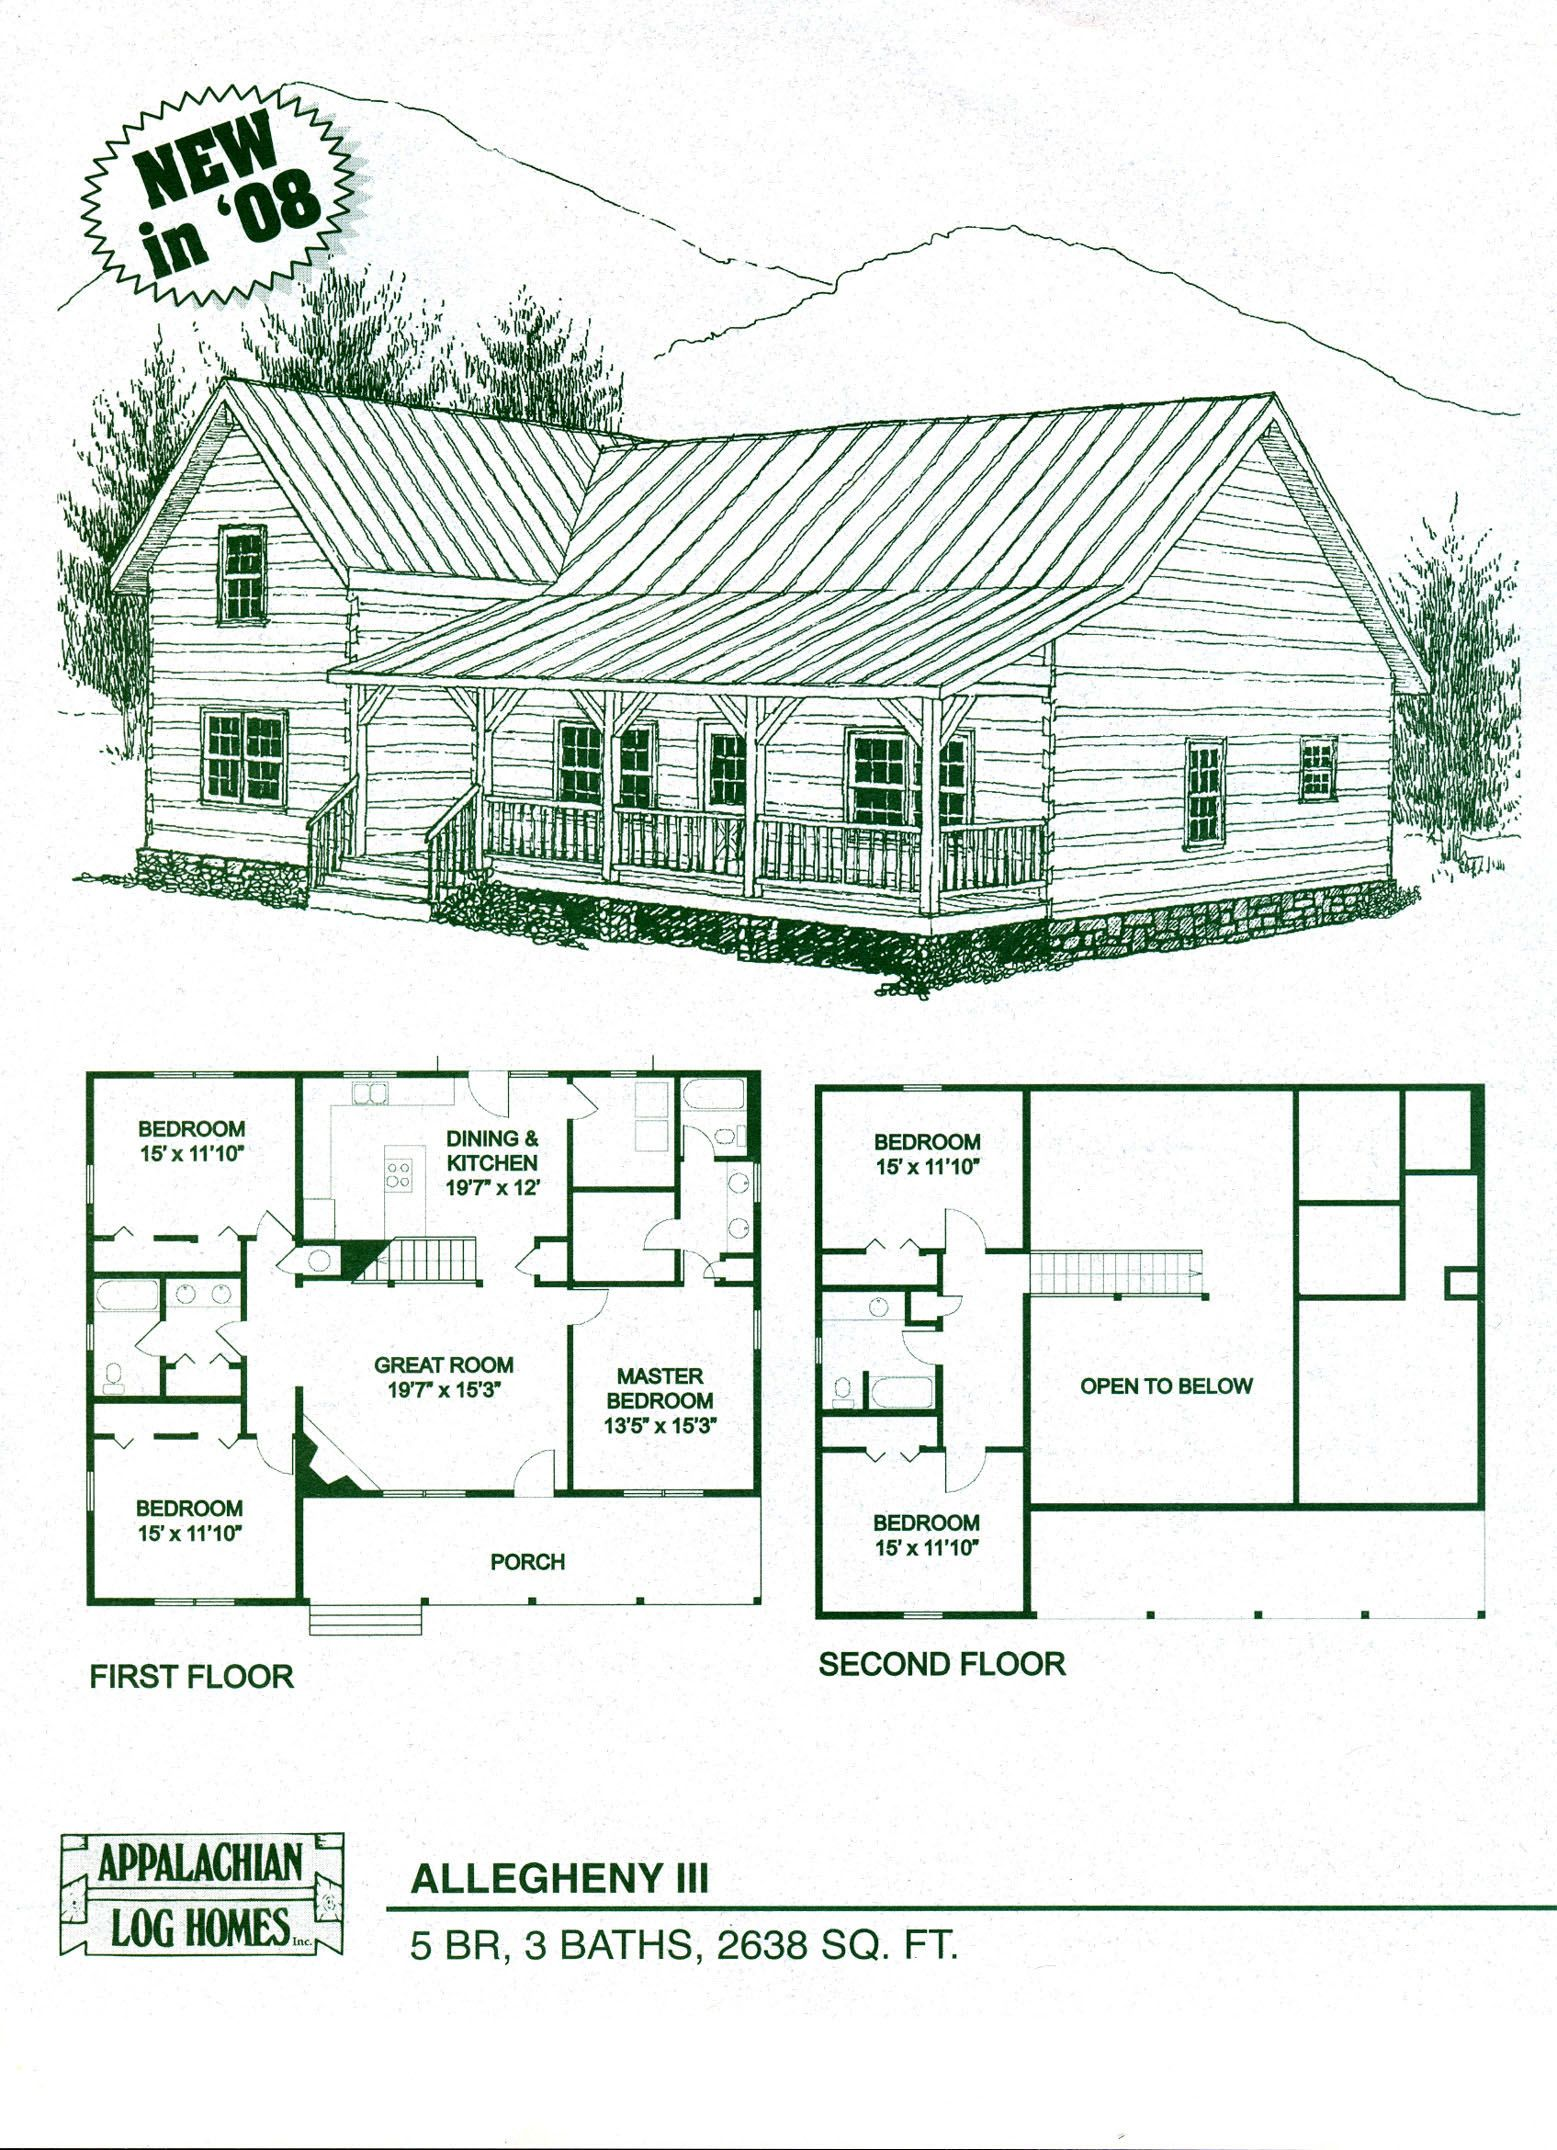 Log home floor plans log cabin kits appalachian log for Log cabin homes plans